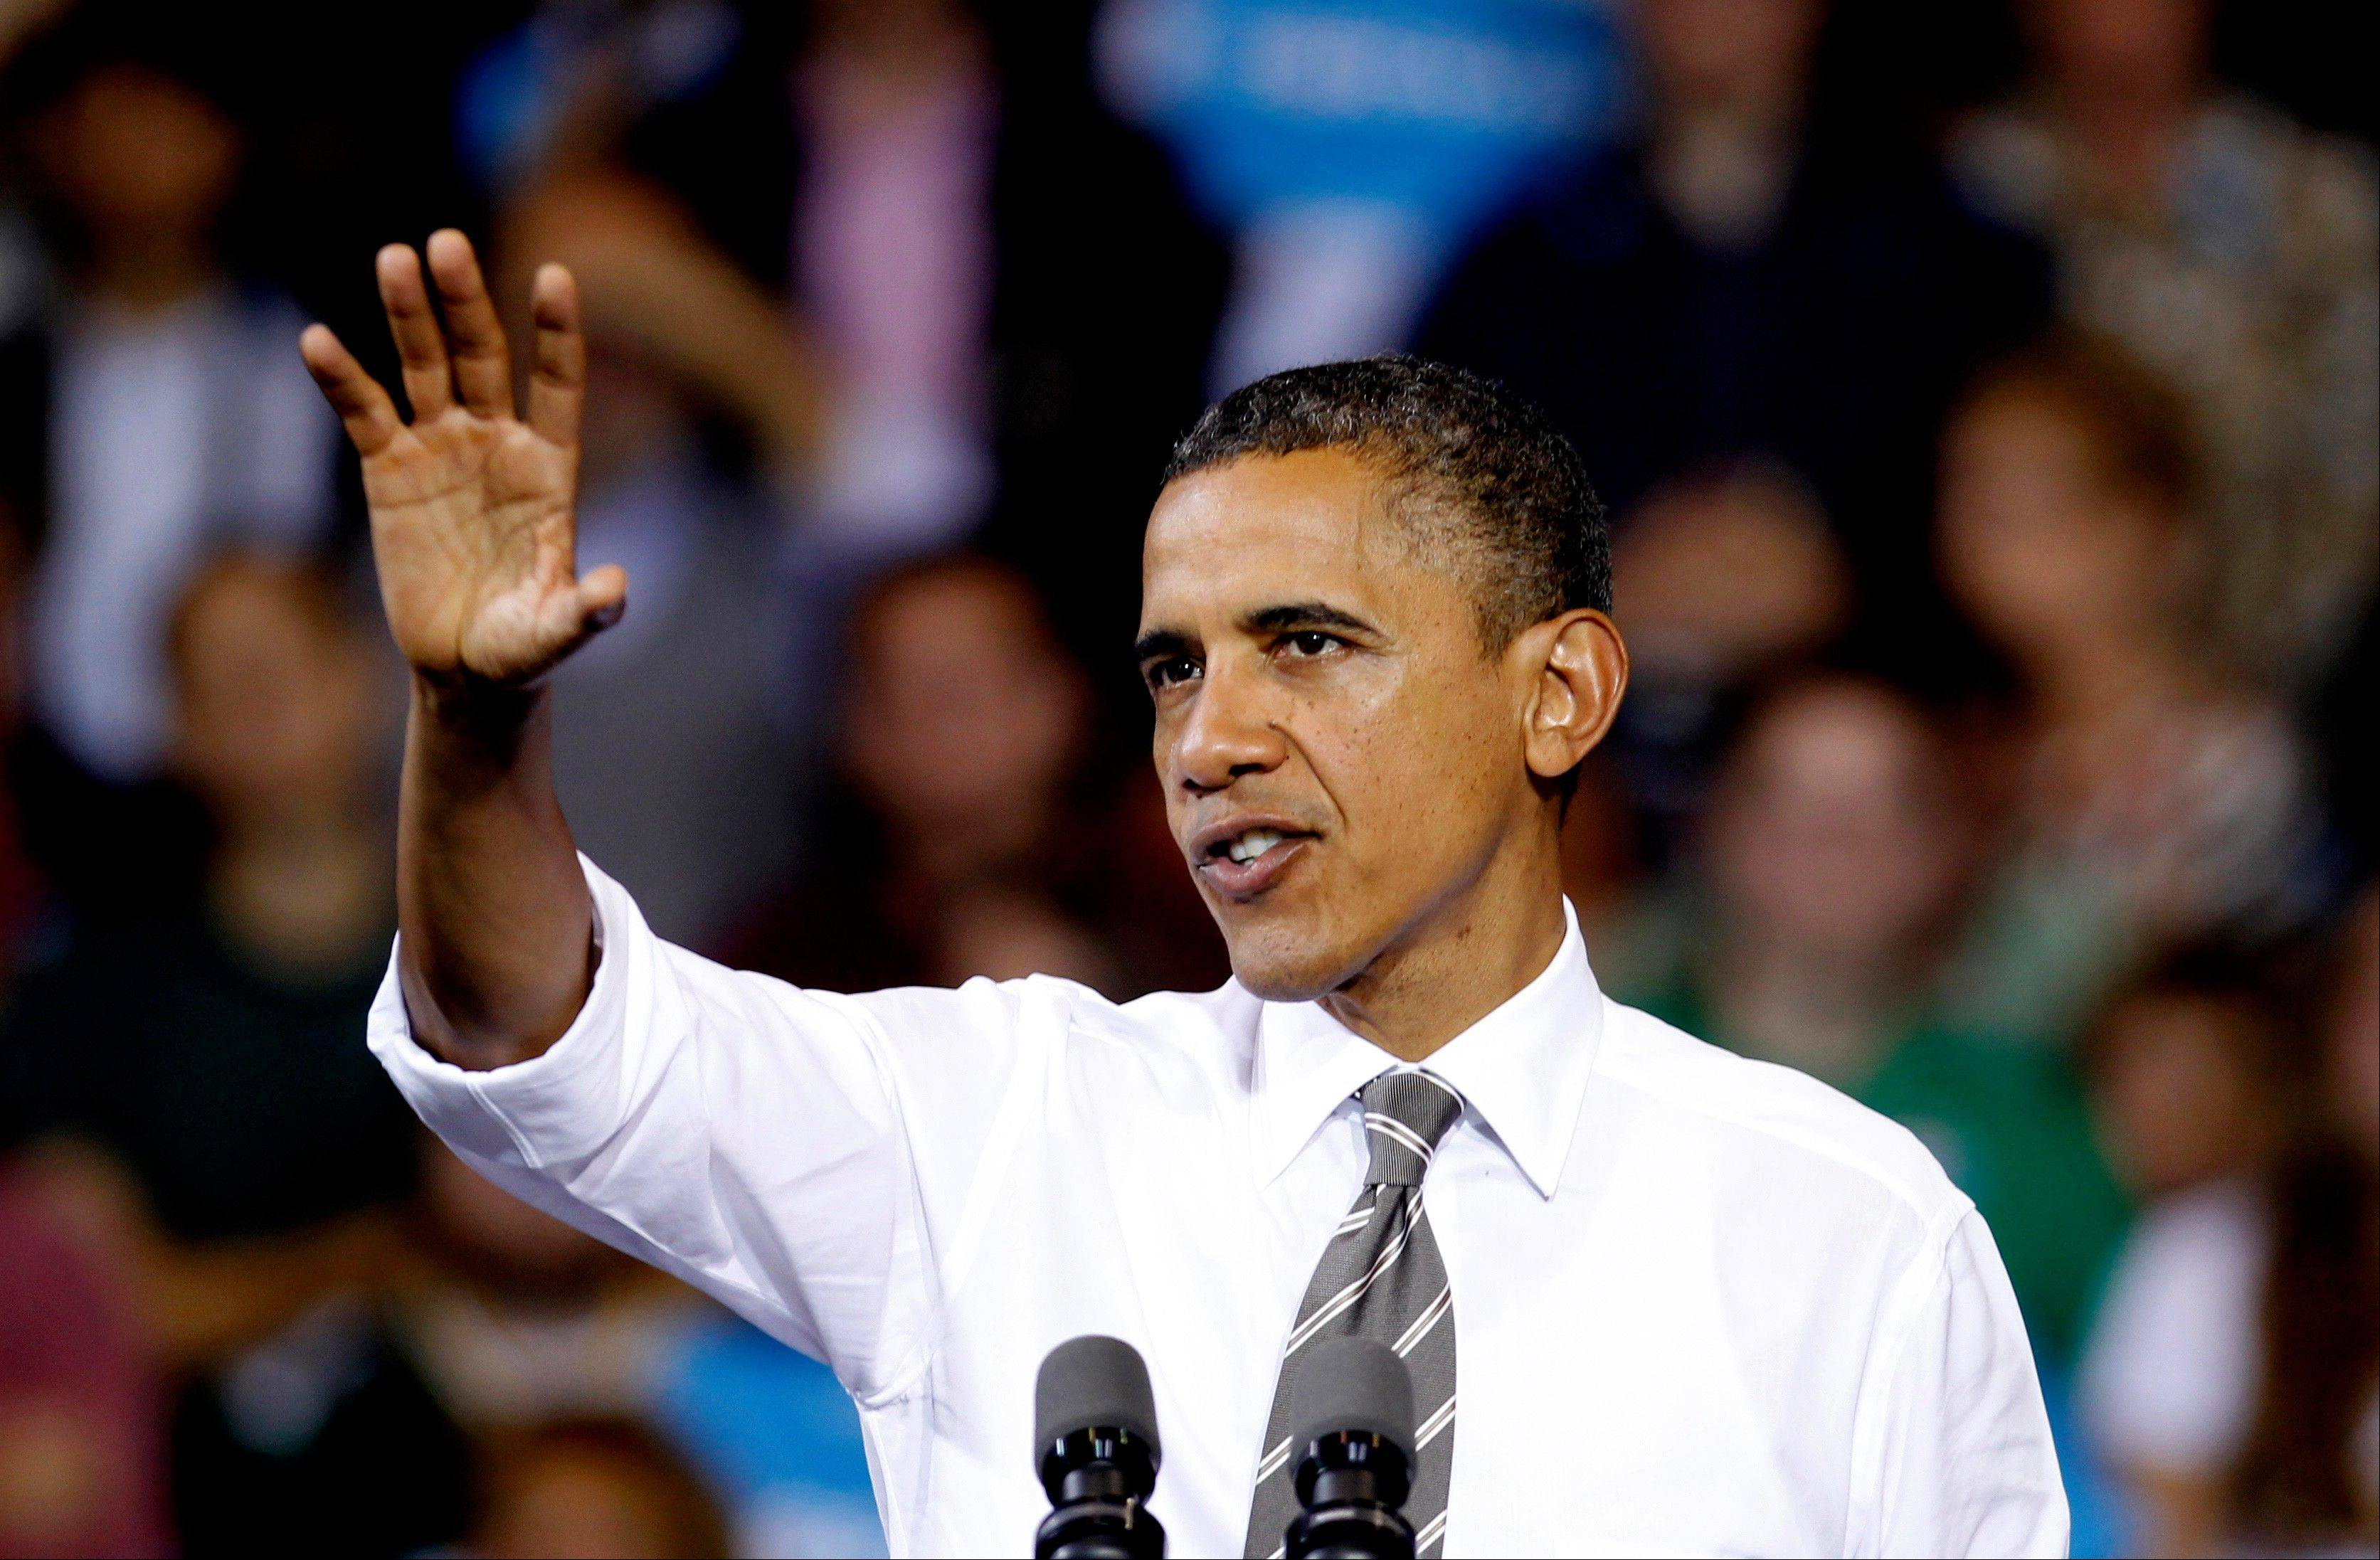 President Barack Obama speaks at a campaign event at The Memorial Athletic and Convocation Center at Kent State University Wednesday, Sept. 26, 2012, in Kent, Ohio.